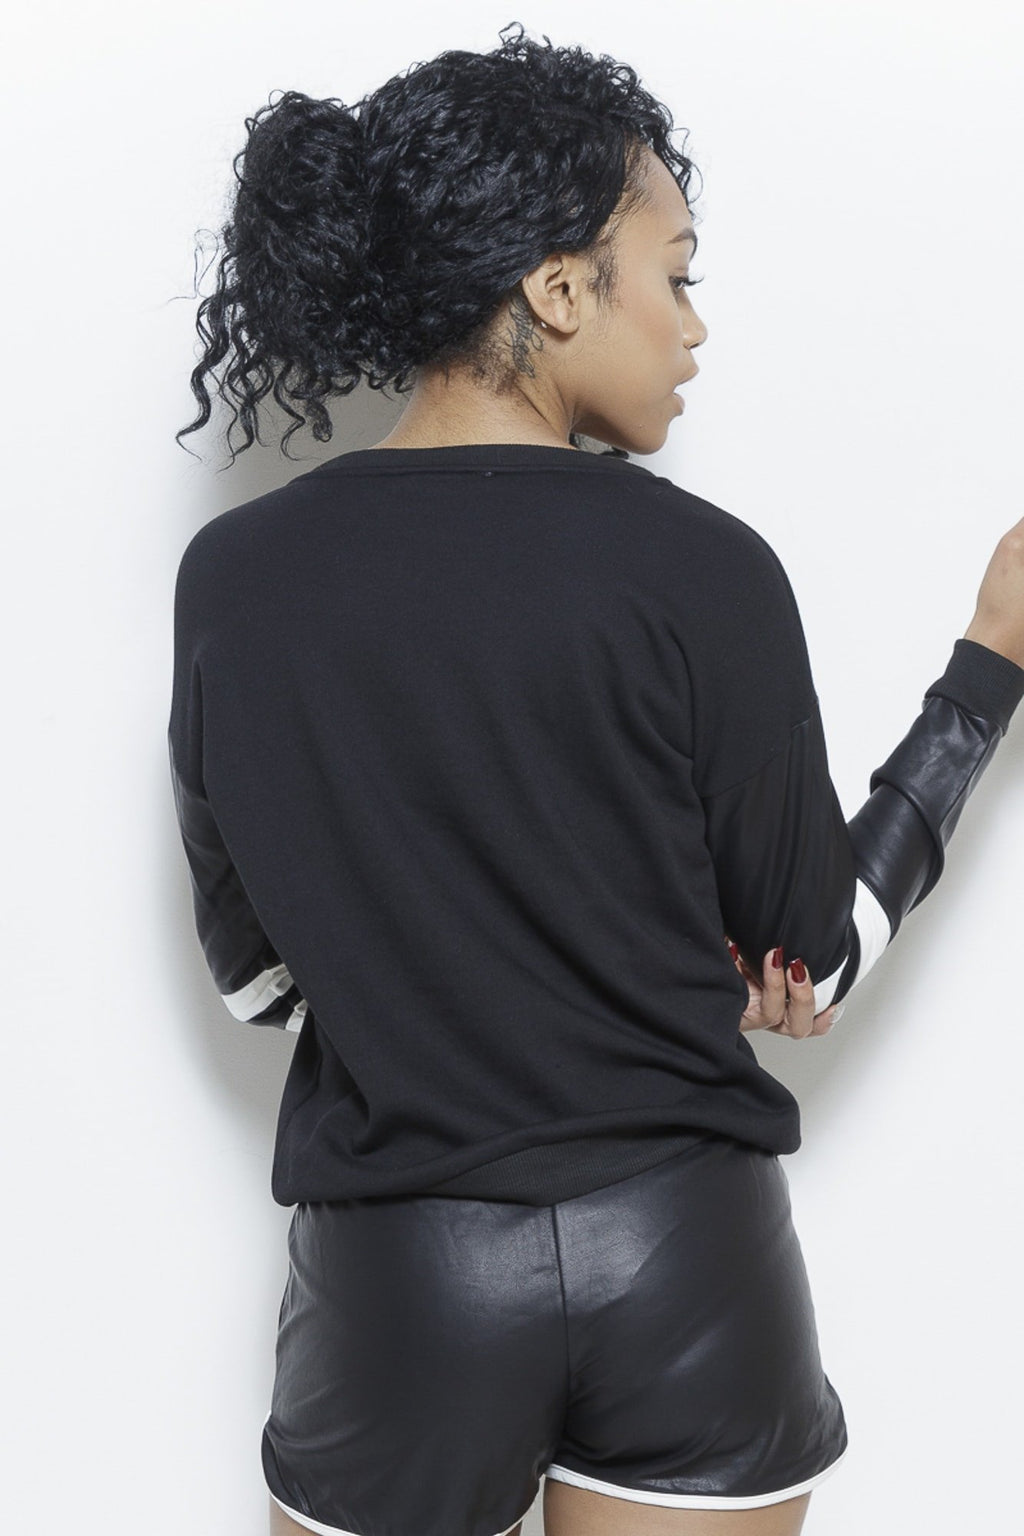 All Tied Up - Faux Leather Sweatshirt Clothing Fair Shade